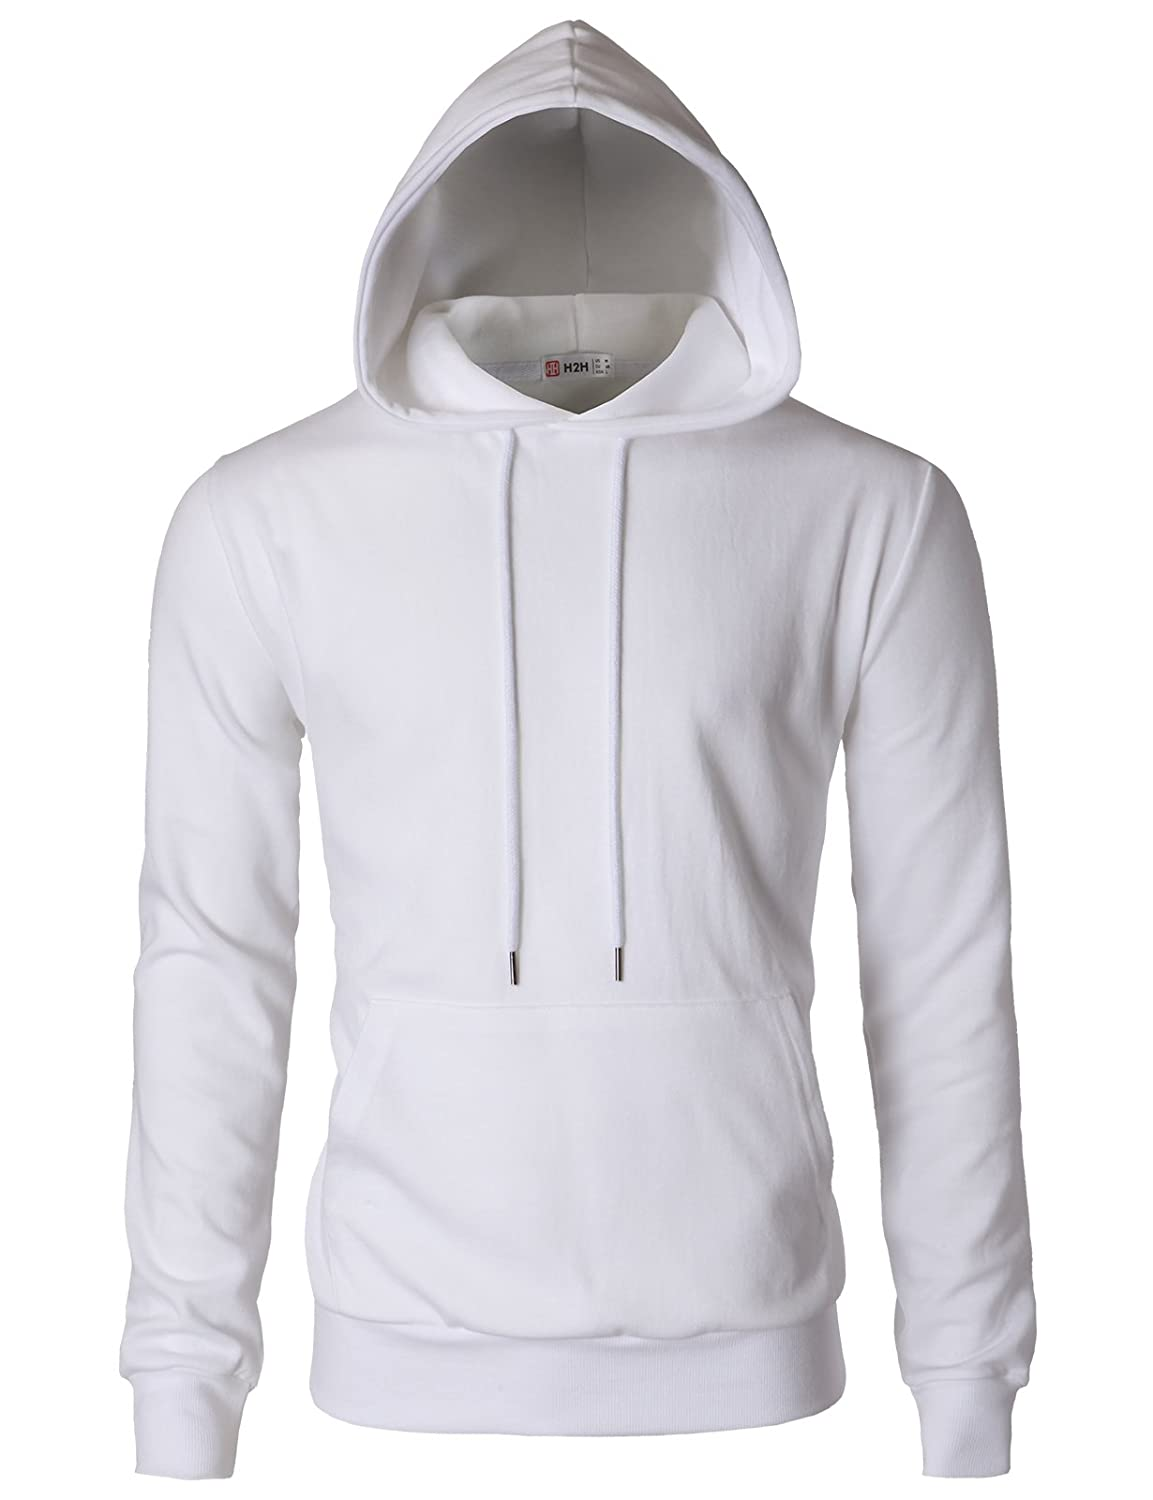 Cmohol054white XLarge H2H Mens Casual Slim Fit Long Sleeve color Block Hoodie with V Design line